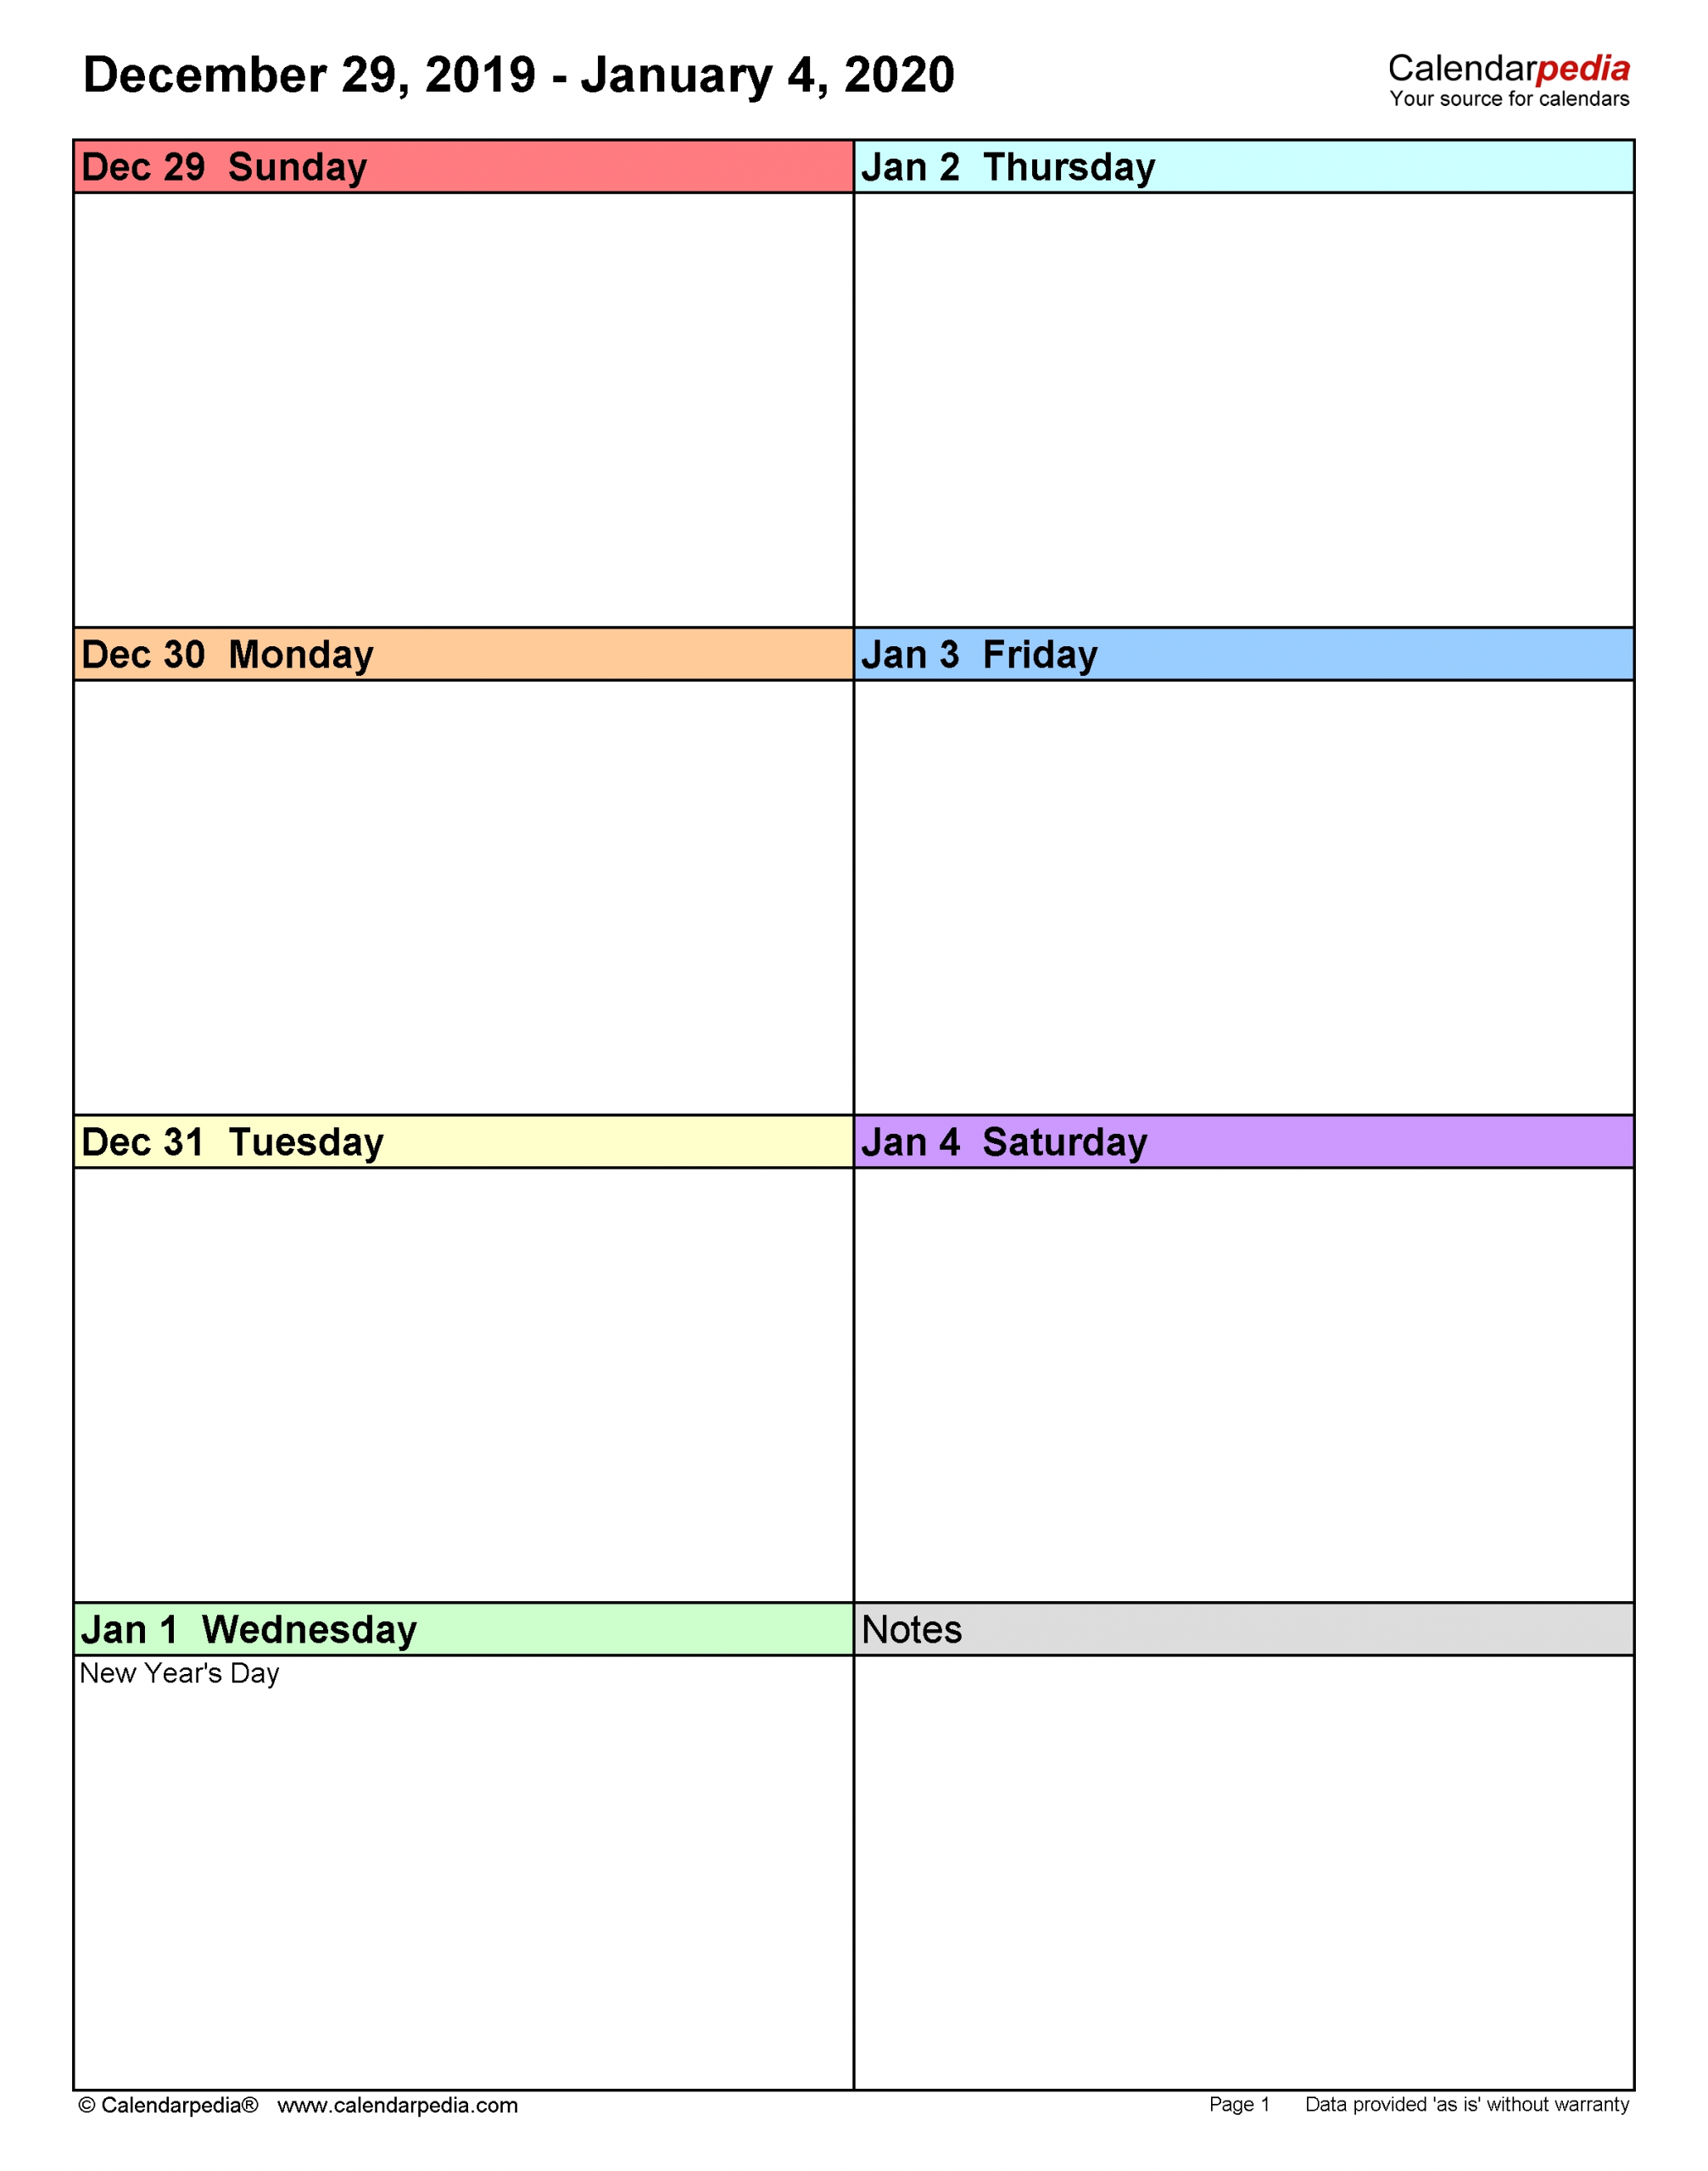 Weekly Calendars 2020 For Pdf - 12 Free Printable Templates for Year Calendar 2020 With Space To Write Int